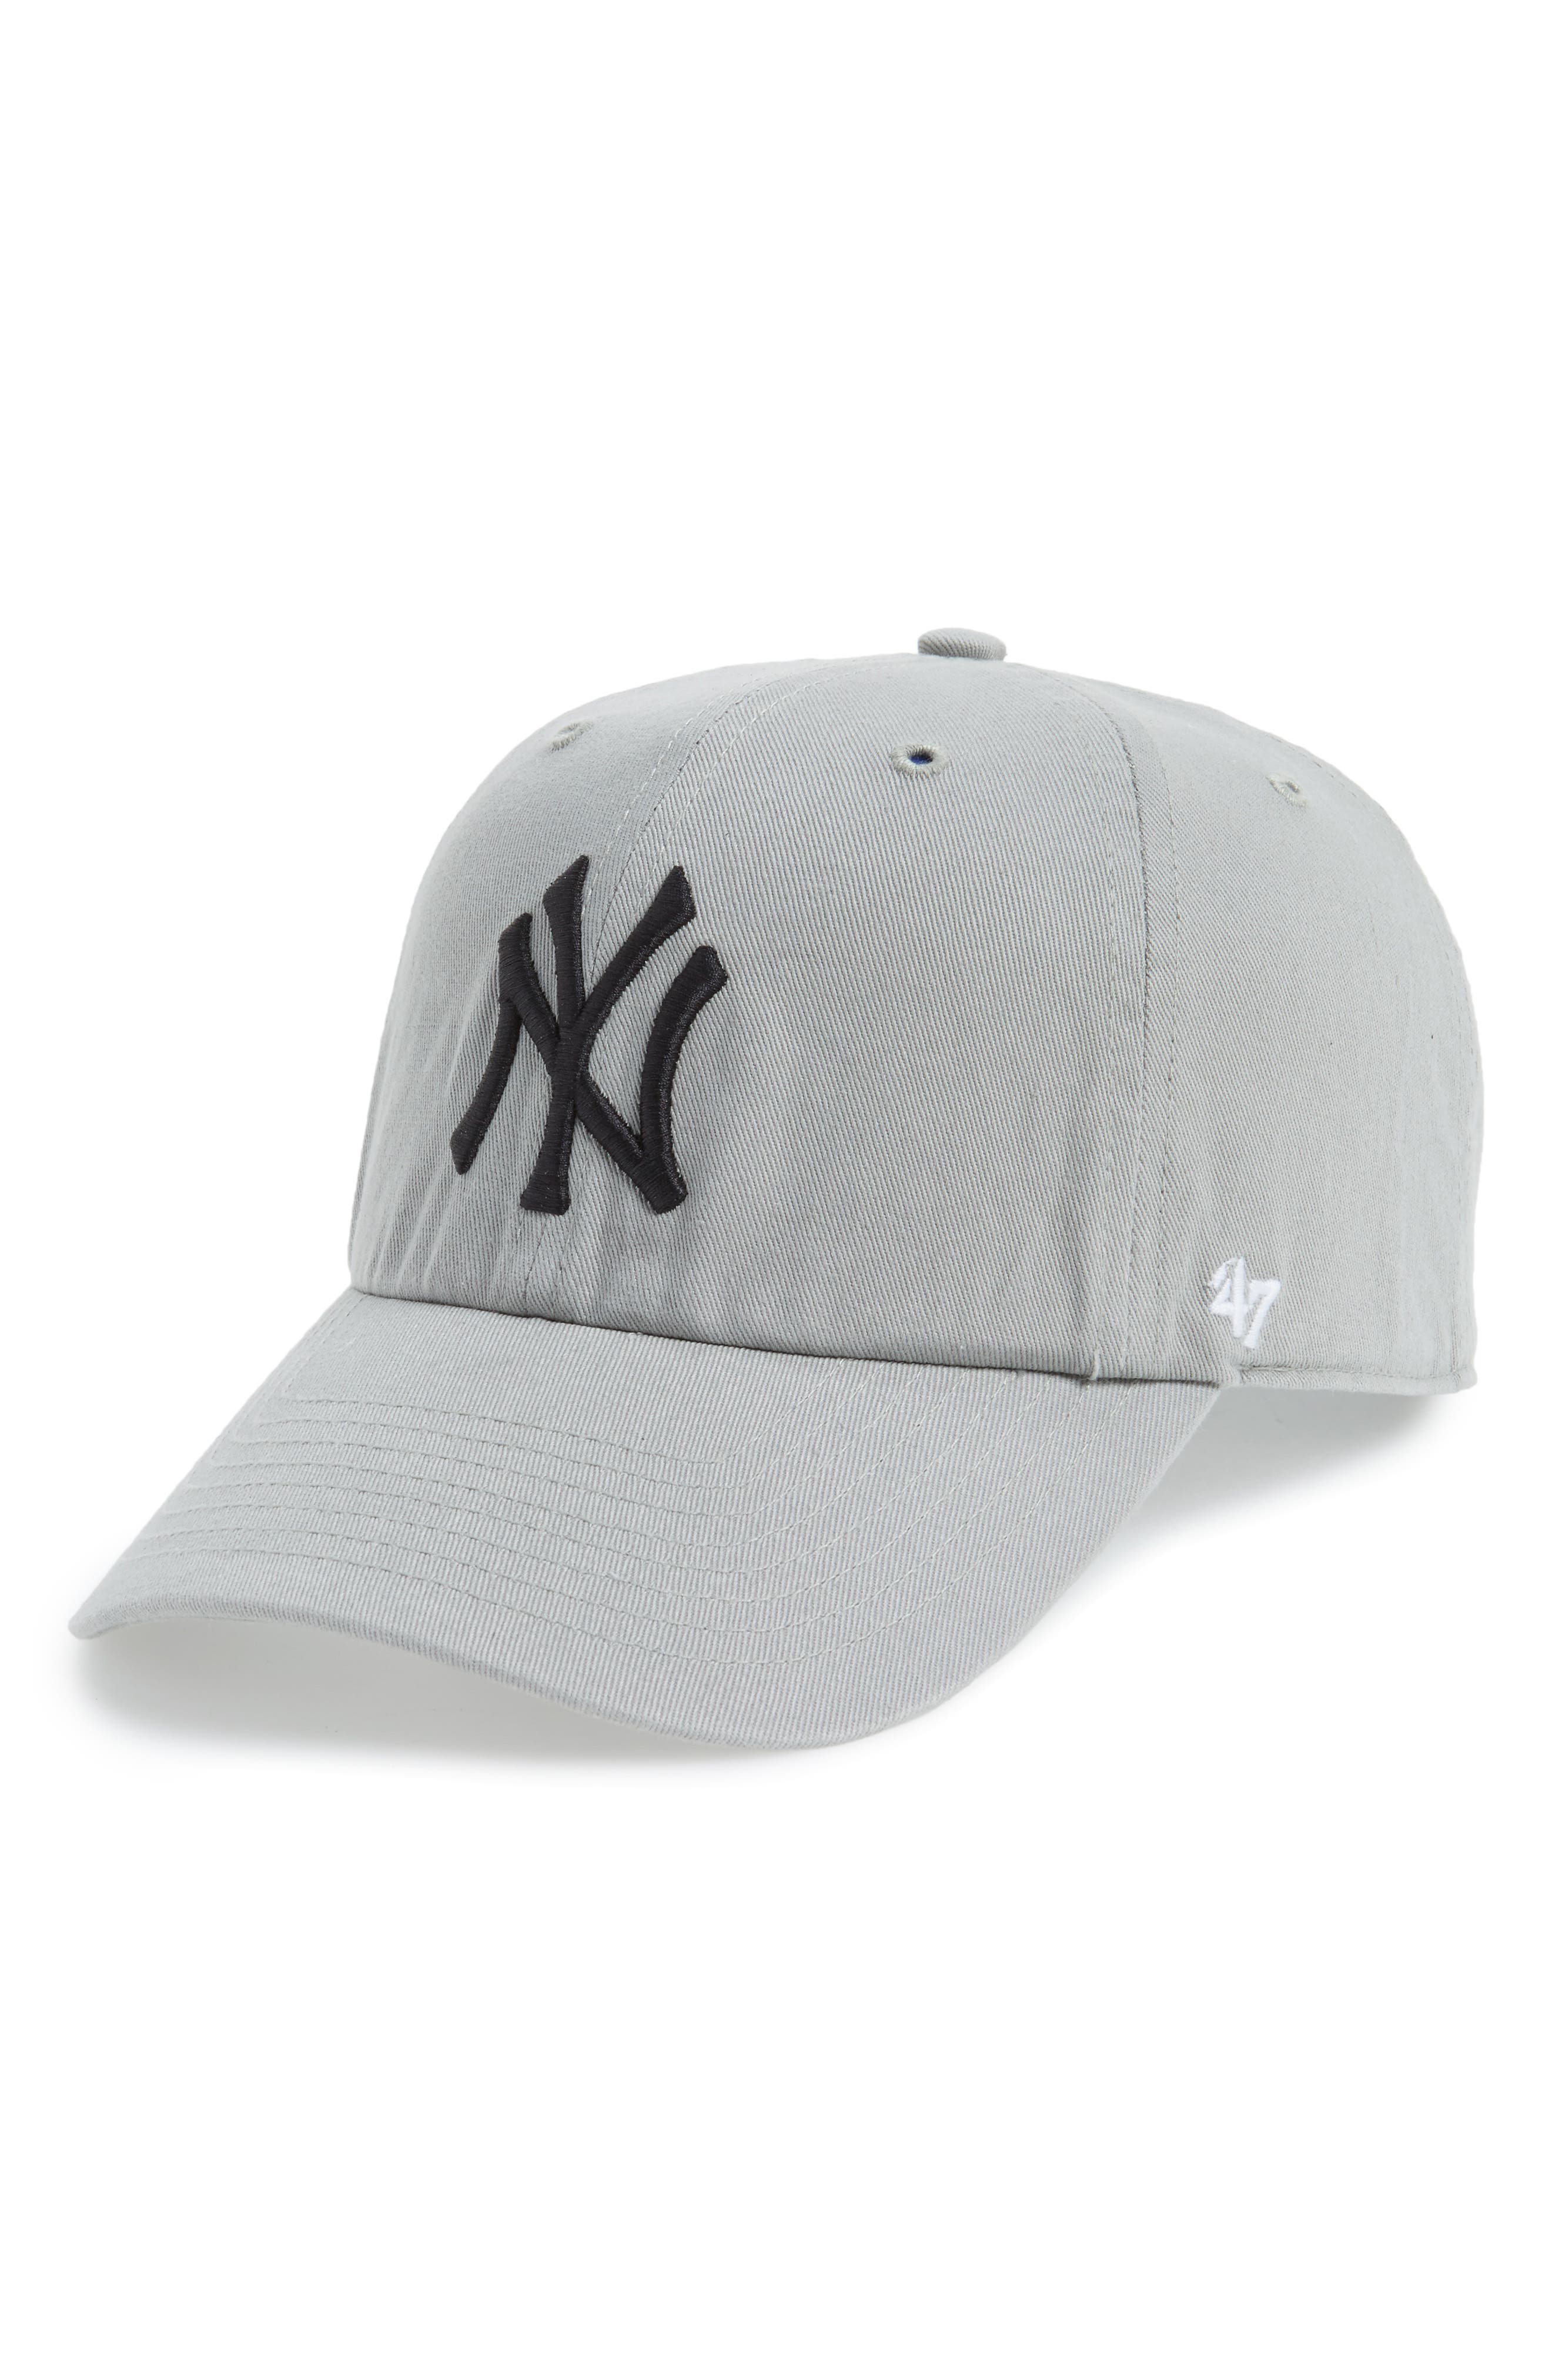 Main Image - '47 Clean Up NY Yankees Baseball Cap